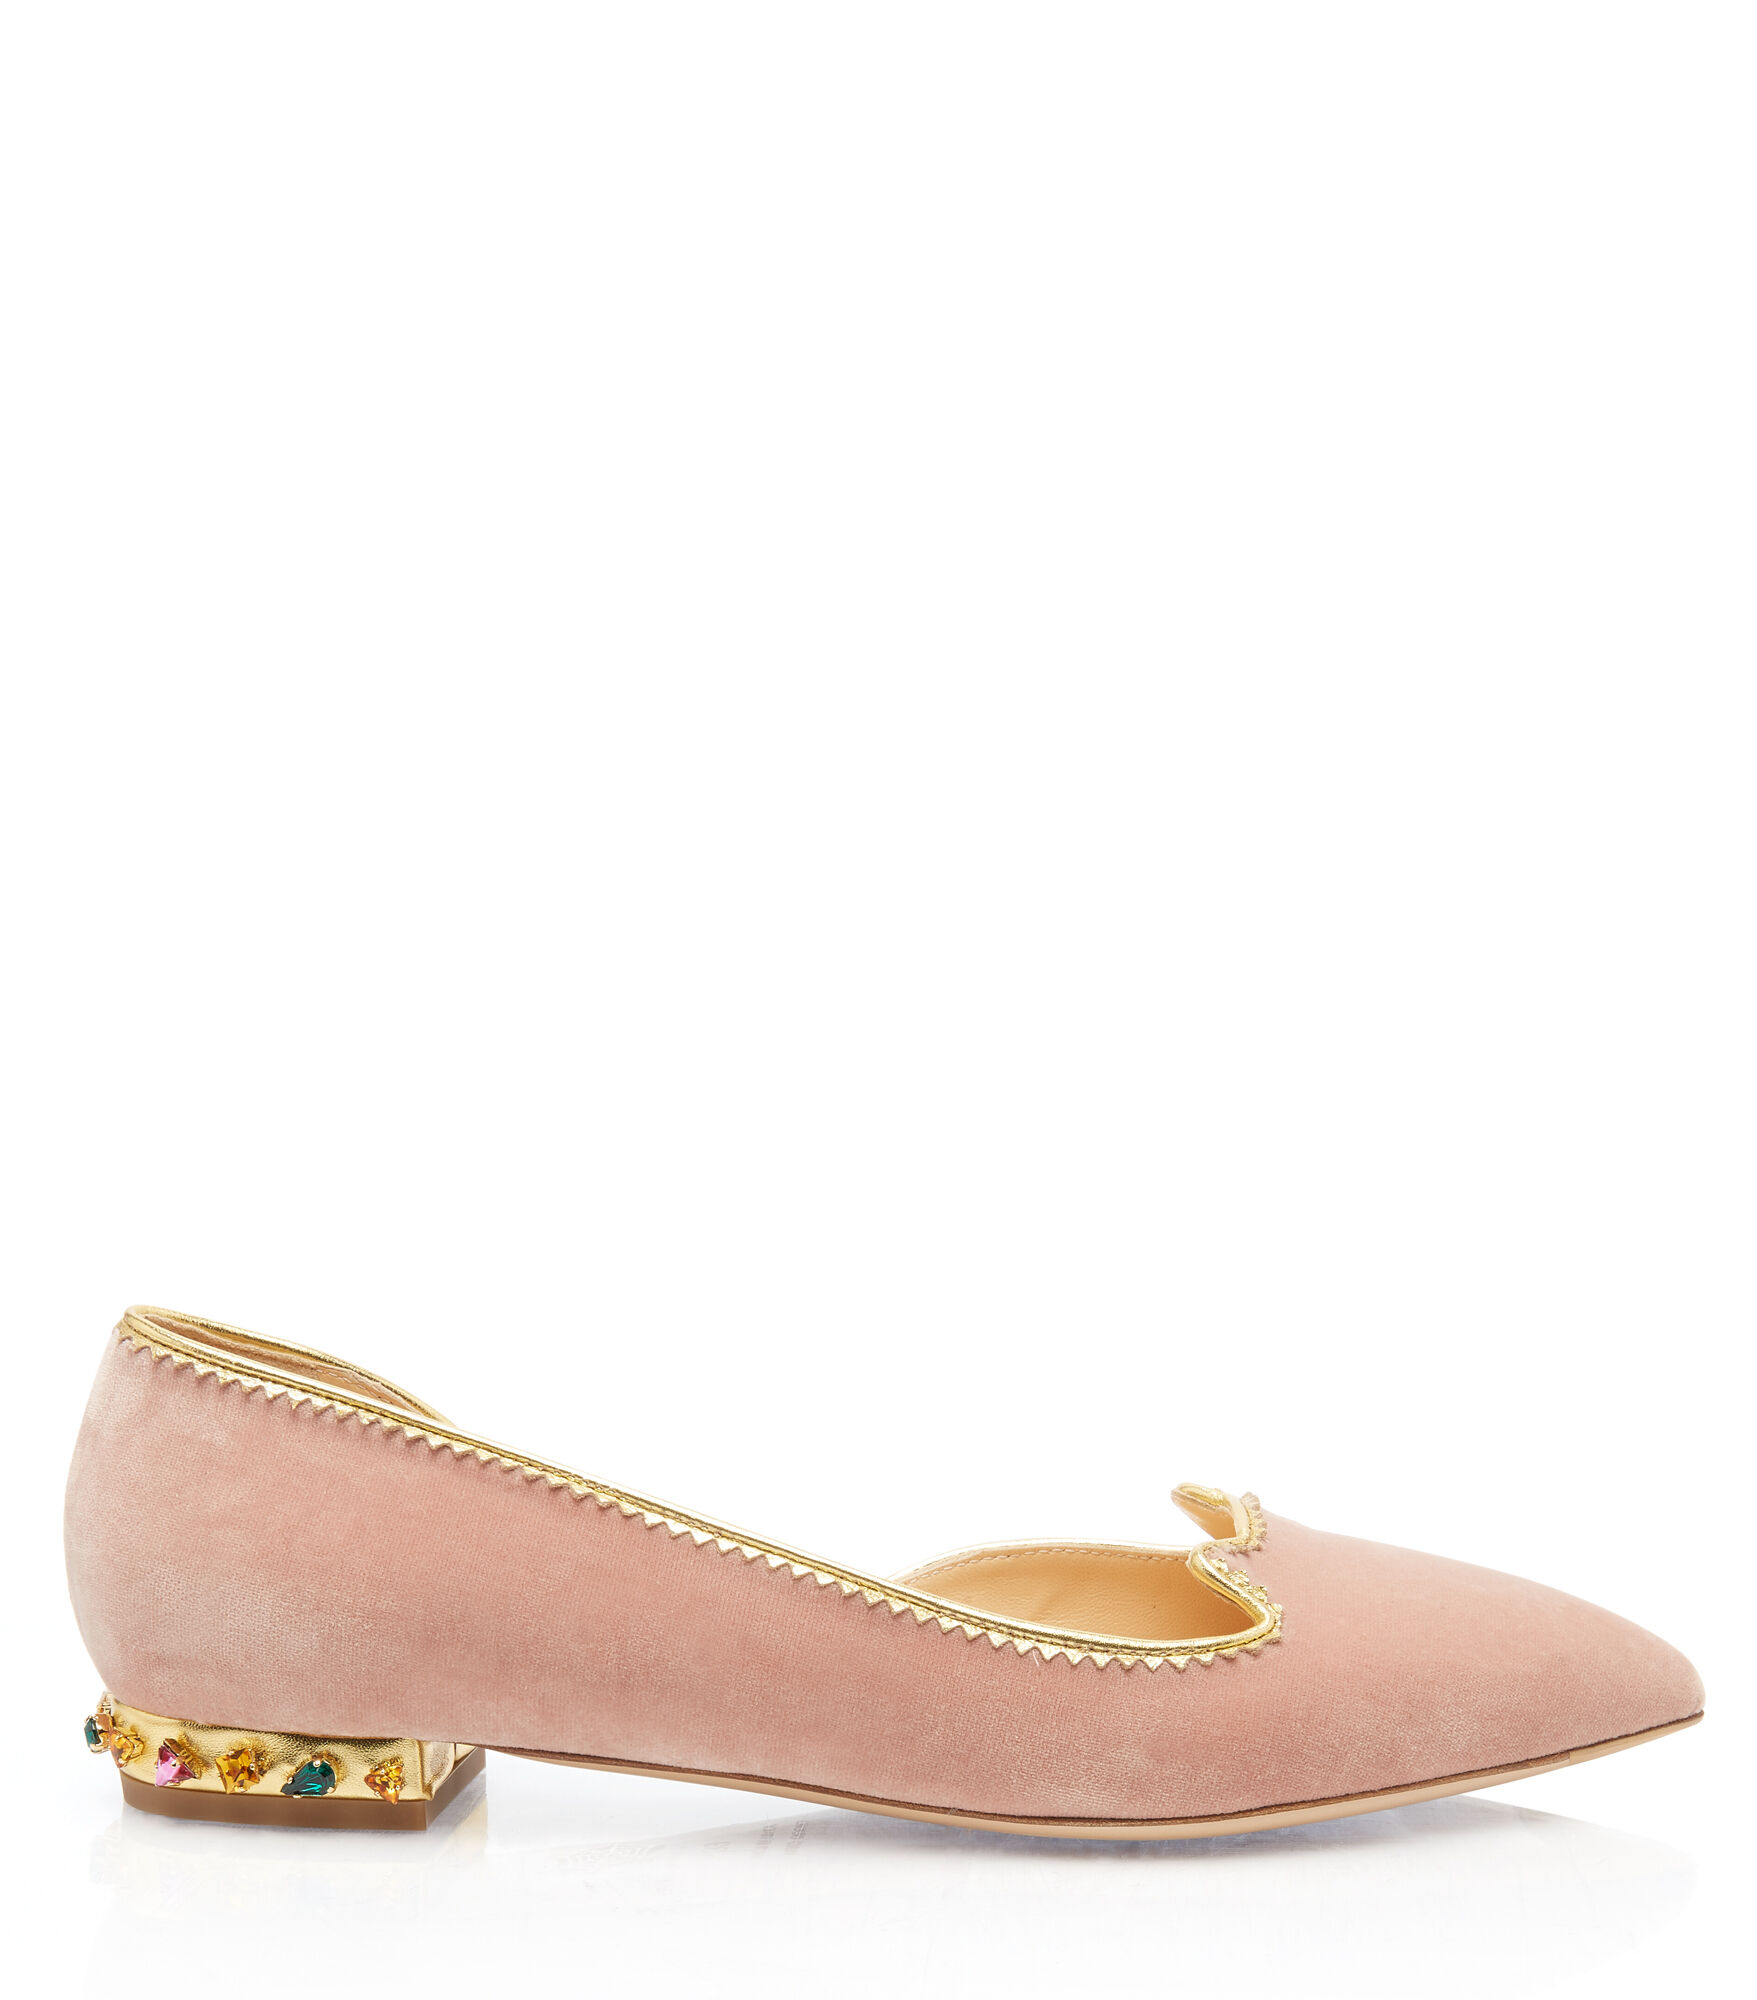 Charlotte Olympia Bejewelled Kitty D'Orsay In Petal Pink&Multicolor